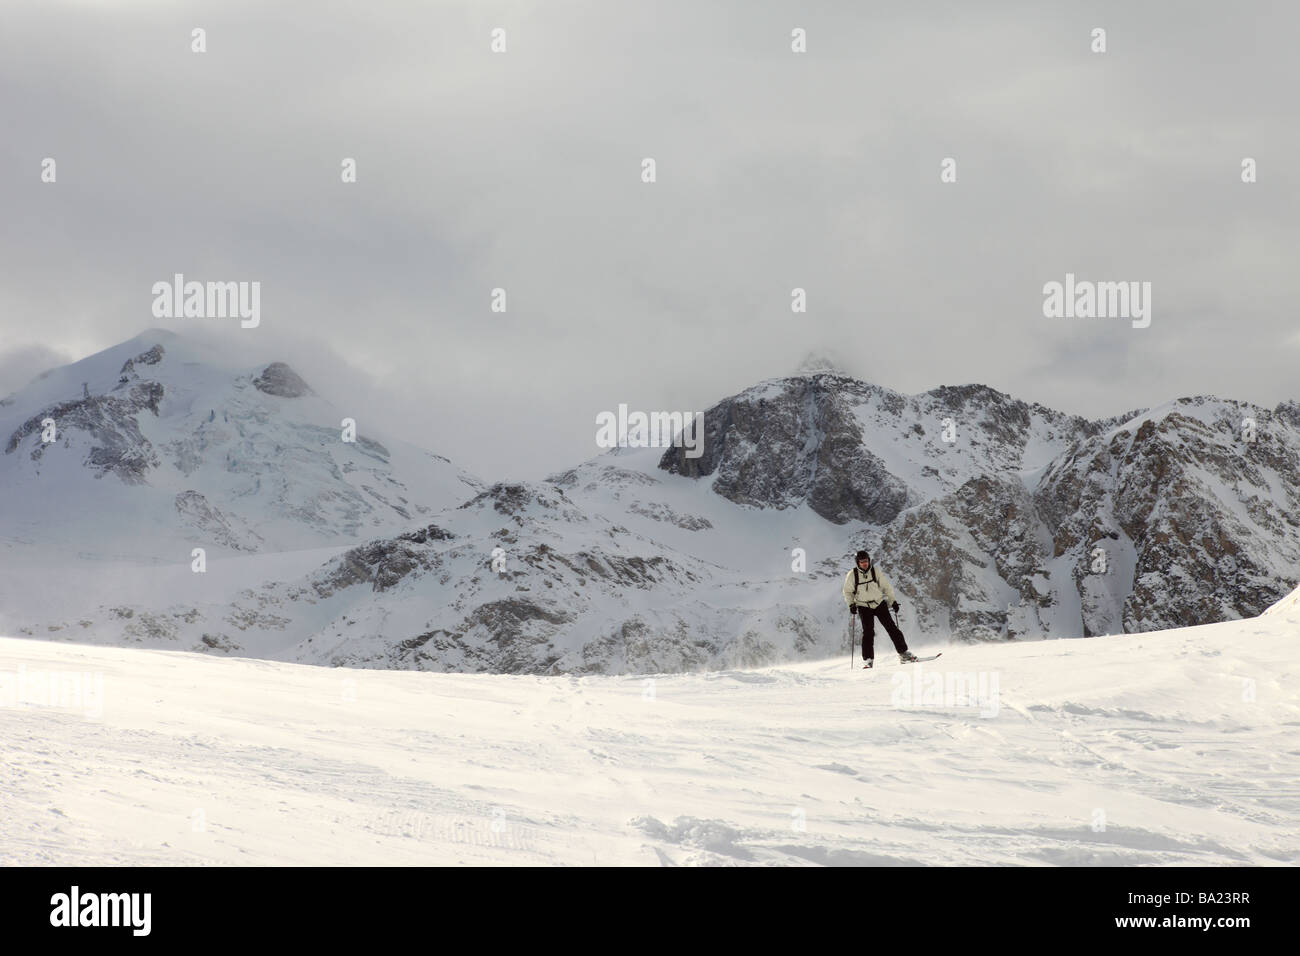 Lone skier in the midst of a break in a snow storm in the ski resort of Tignes Le Lac, Espace Killy, France - Stock Image